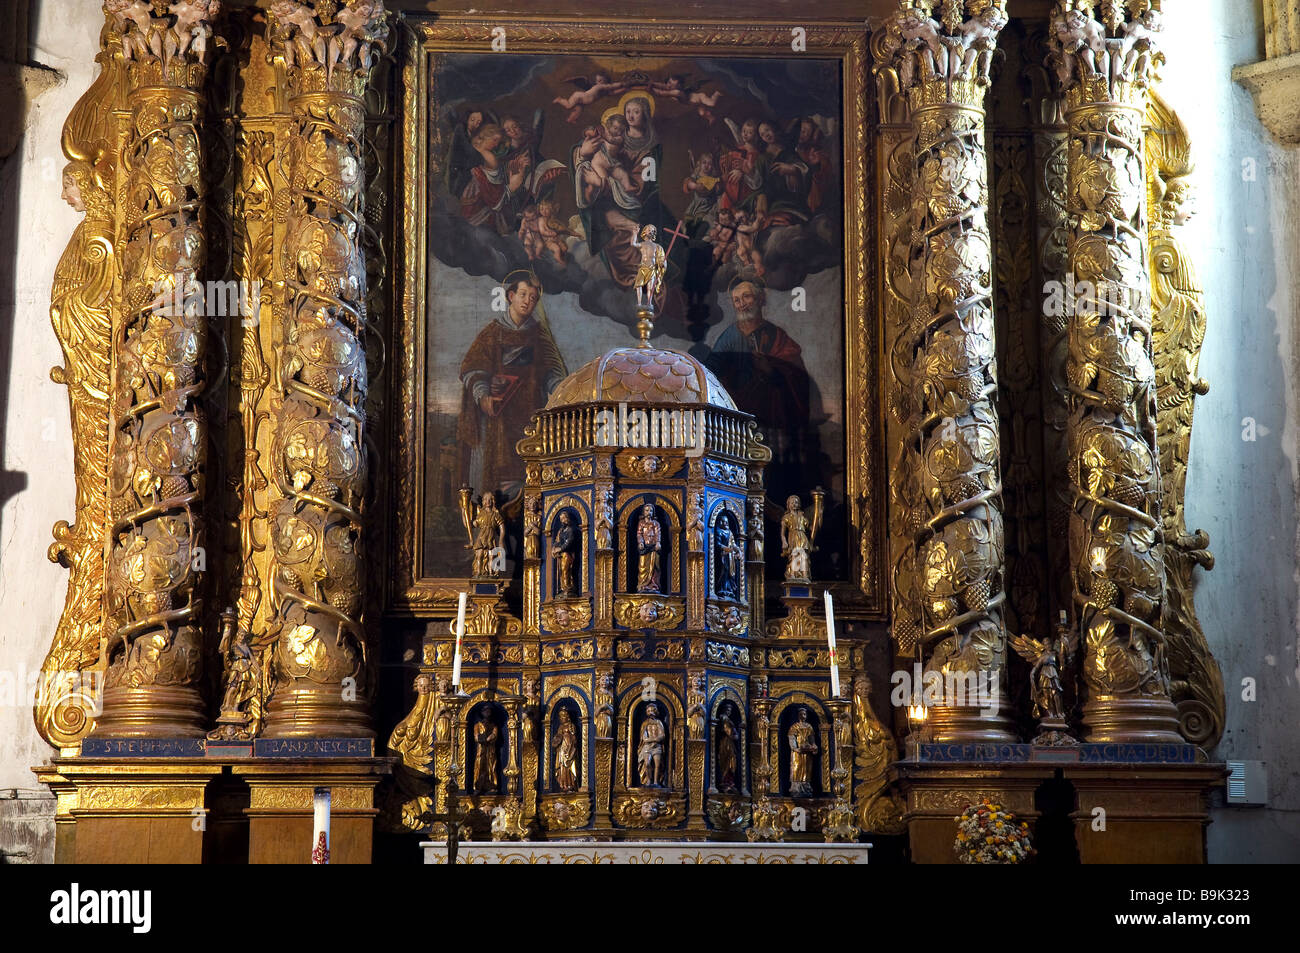 France, Hautes Alpes, Vallouise, Saint Etienne Church, 17th century altarpiece surrounded with a golden tabernacle - Stock Image